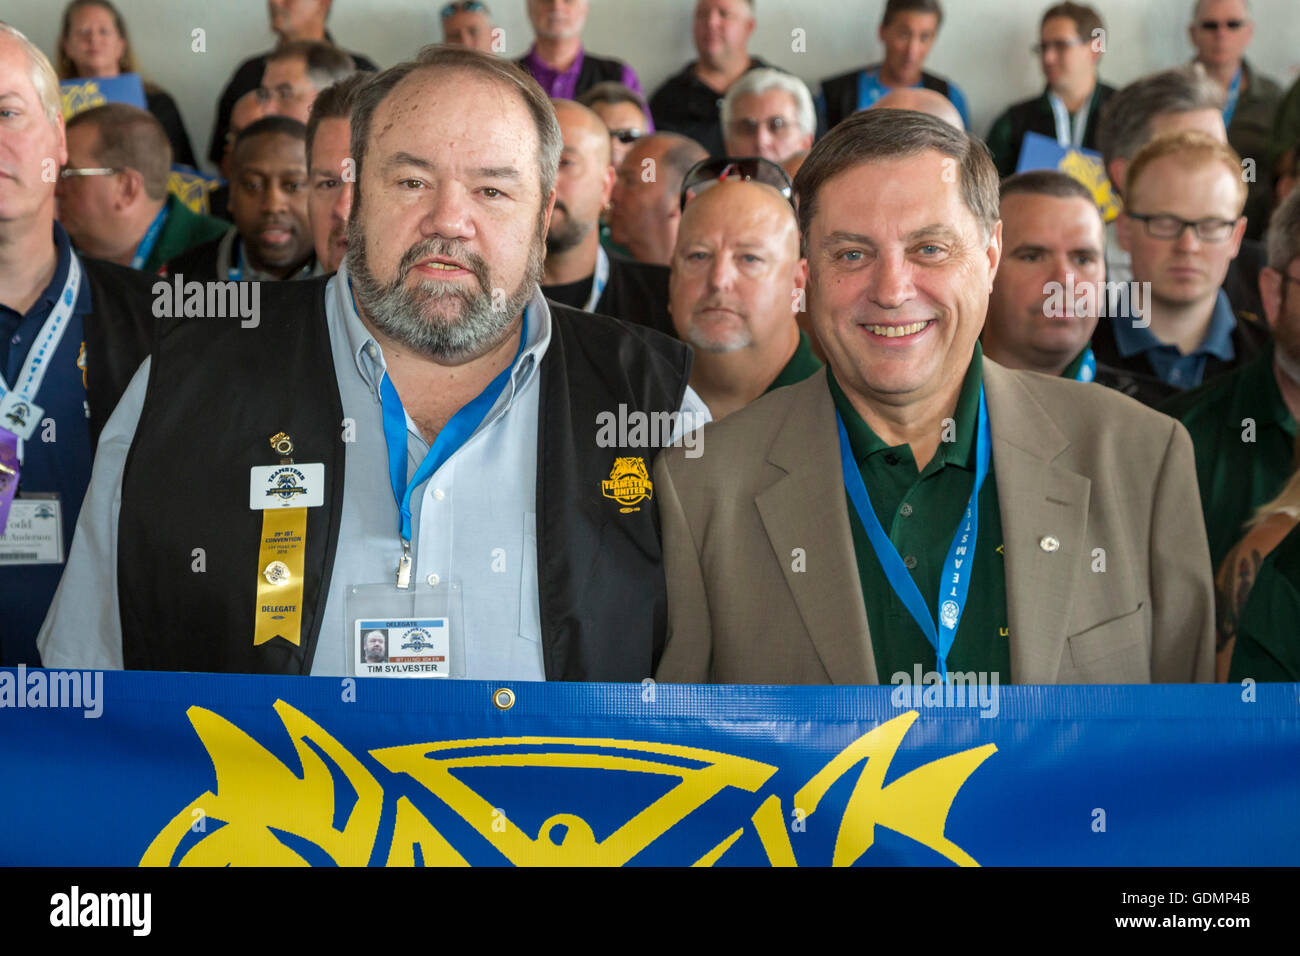 Las Vegas, Nevada - Fred Zuckerman (right), reform candidate for Teamsters president, and his running mate, Tim - Stock Image